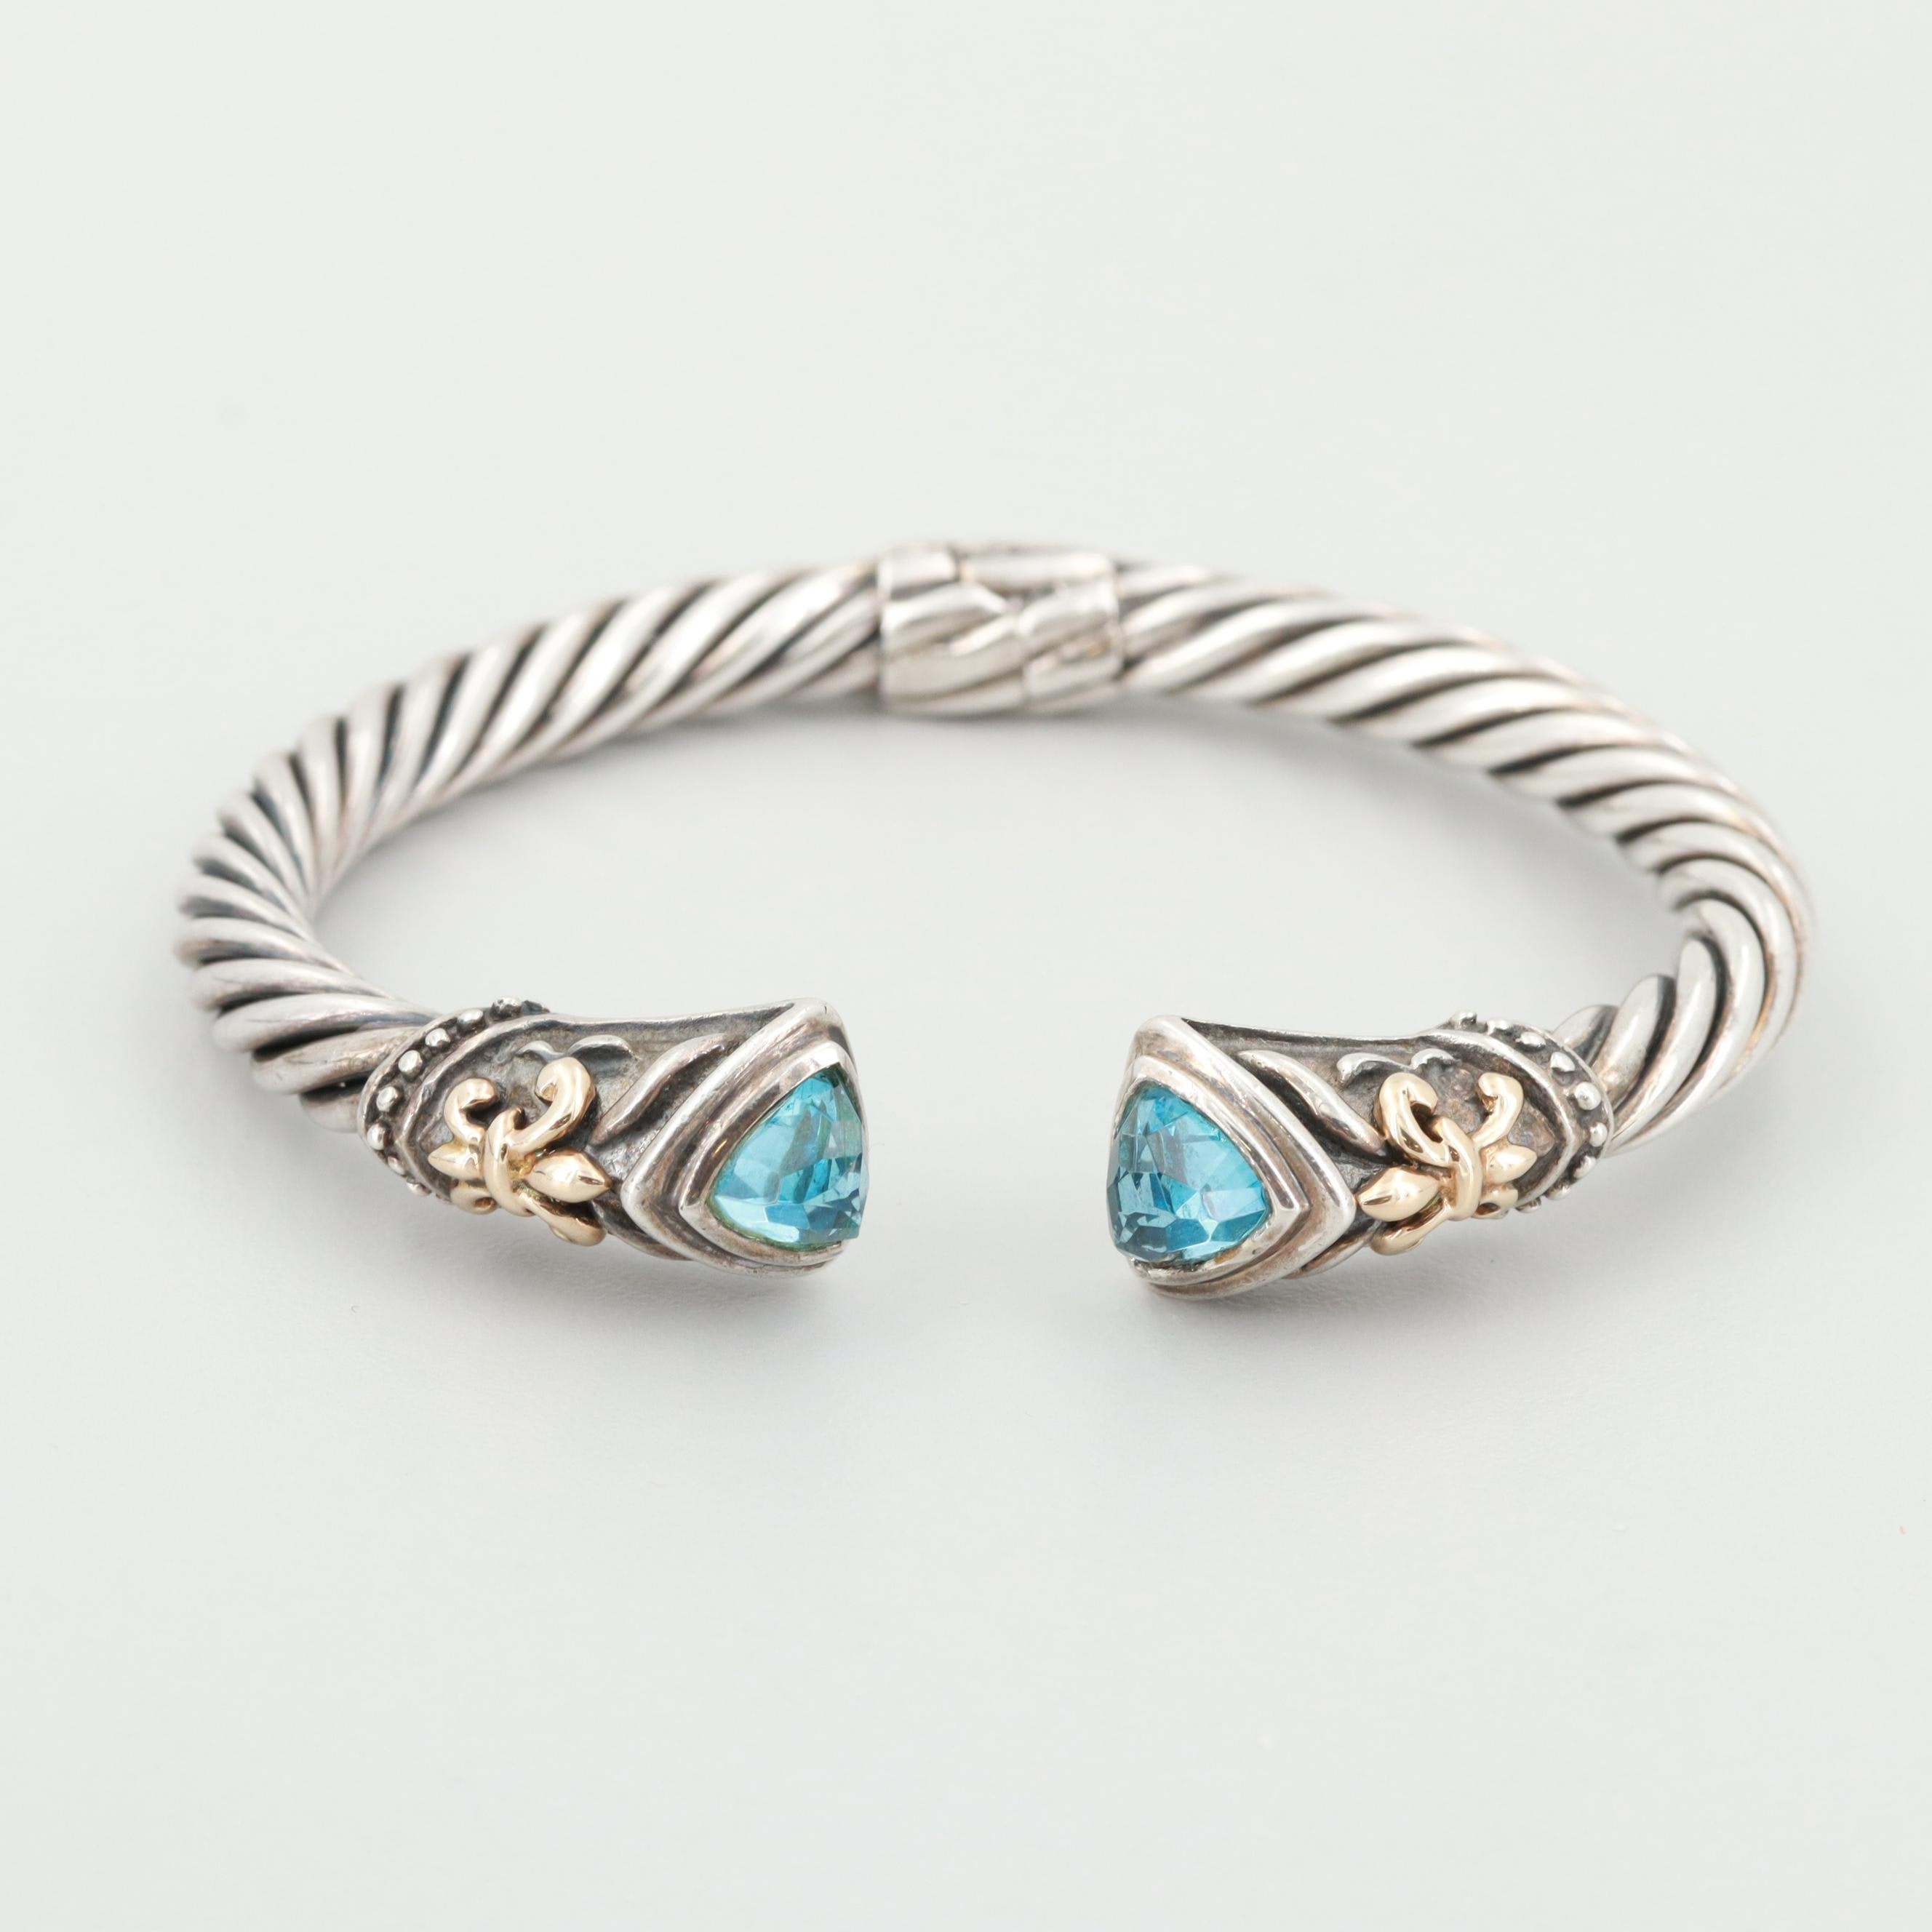 Sterling Silver Blue Topaz Cable Cuff Bracelet with 14K Yellow Gold Accents